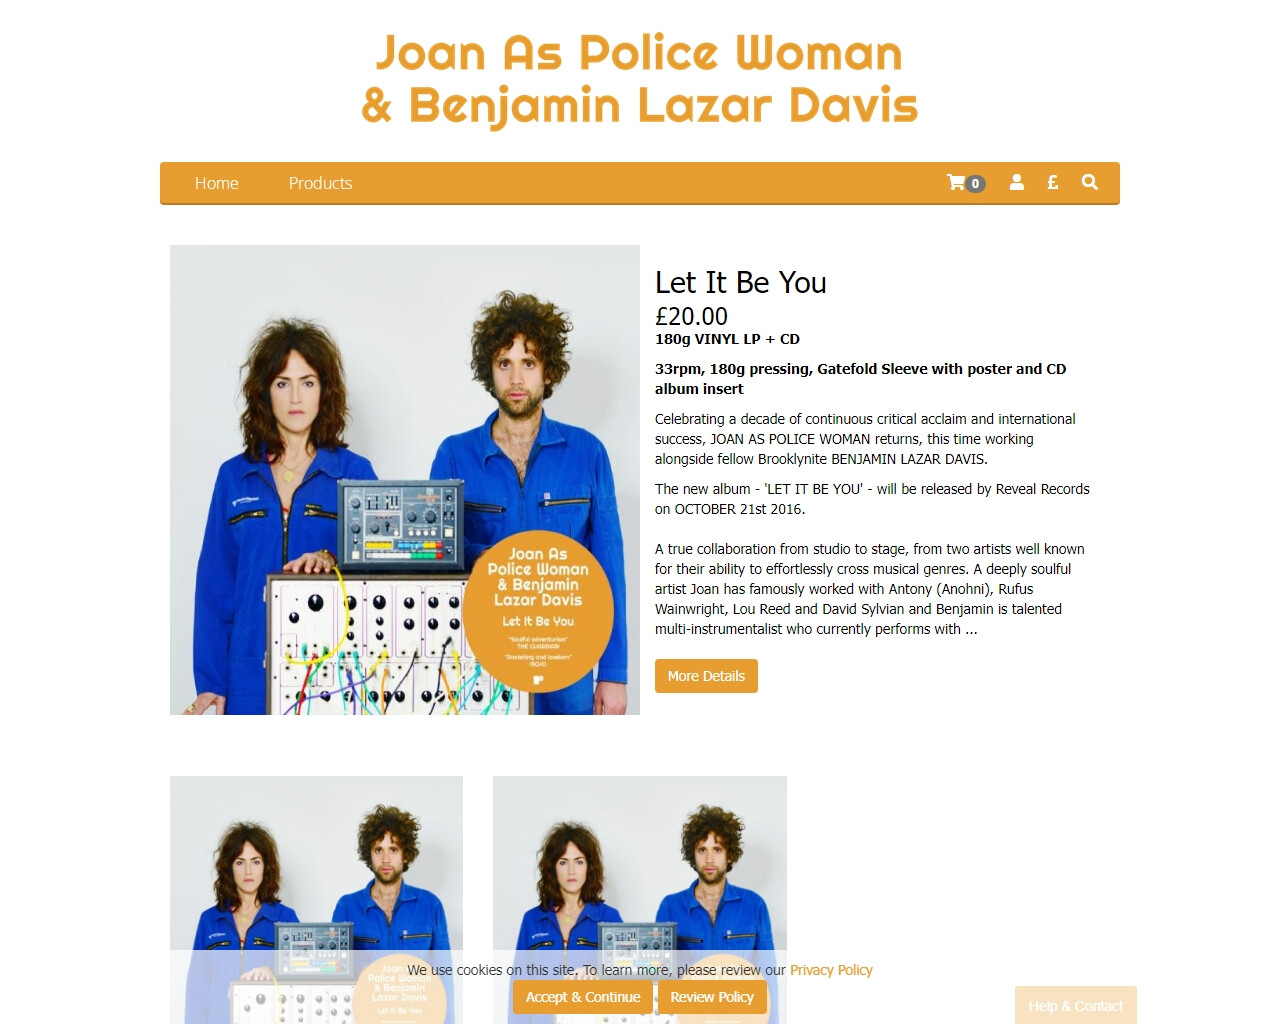 Joan As Police Woman & Benjamin Lazar Davis